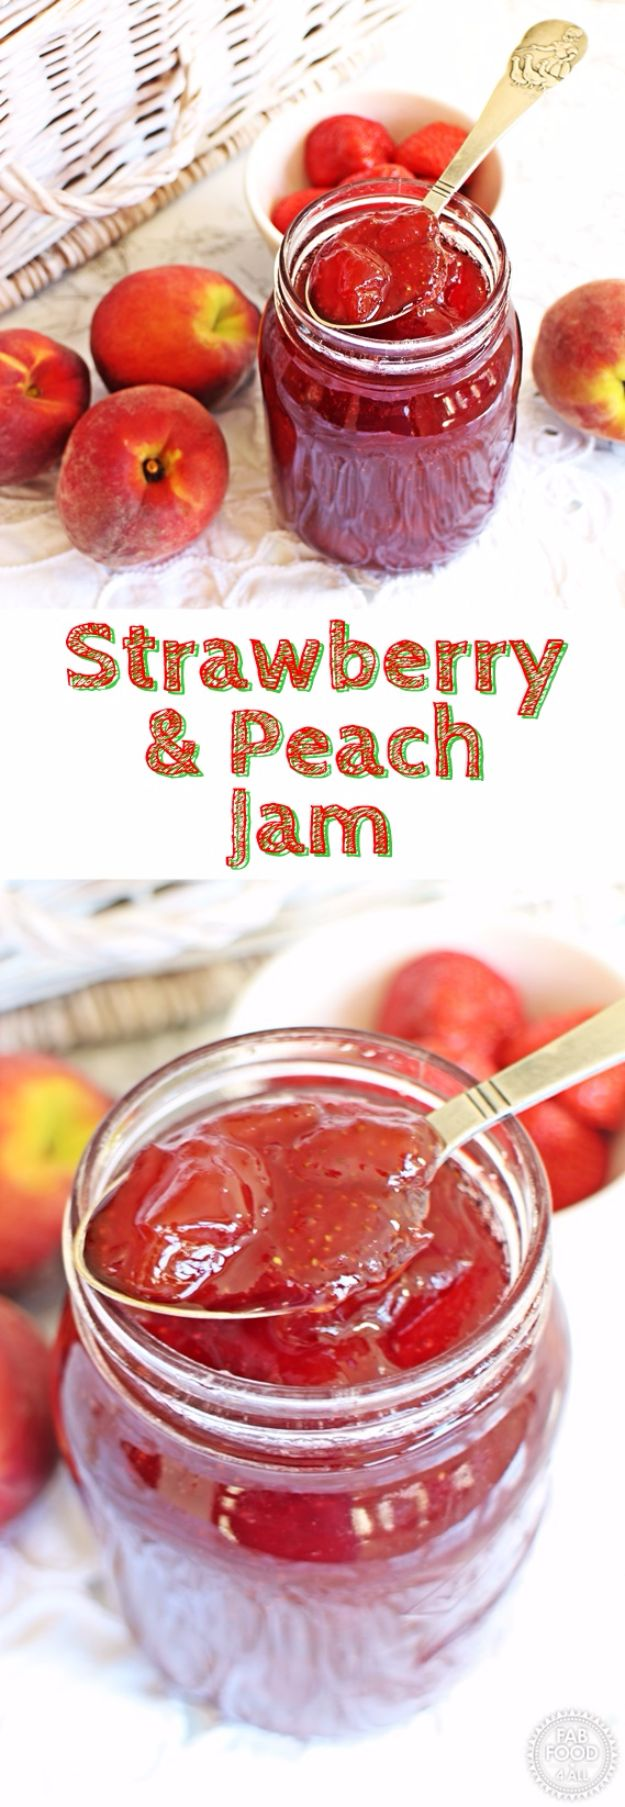 Best Jam and Jelly Recipes - Strawberry & Peach Jam - Homemade Recipe Ideas For Canning - Easy and Unique Jams and Jellies Made With Strawberry, Raspberry, Blackberry, Peach and Fruit - Healthy, Sugar Free, No Pectin, Small Batch, Savory and Freezer Recipes http://diyjoy.com/jam-jelly-recipes